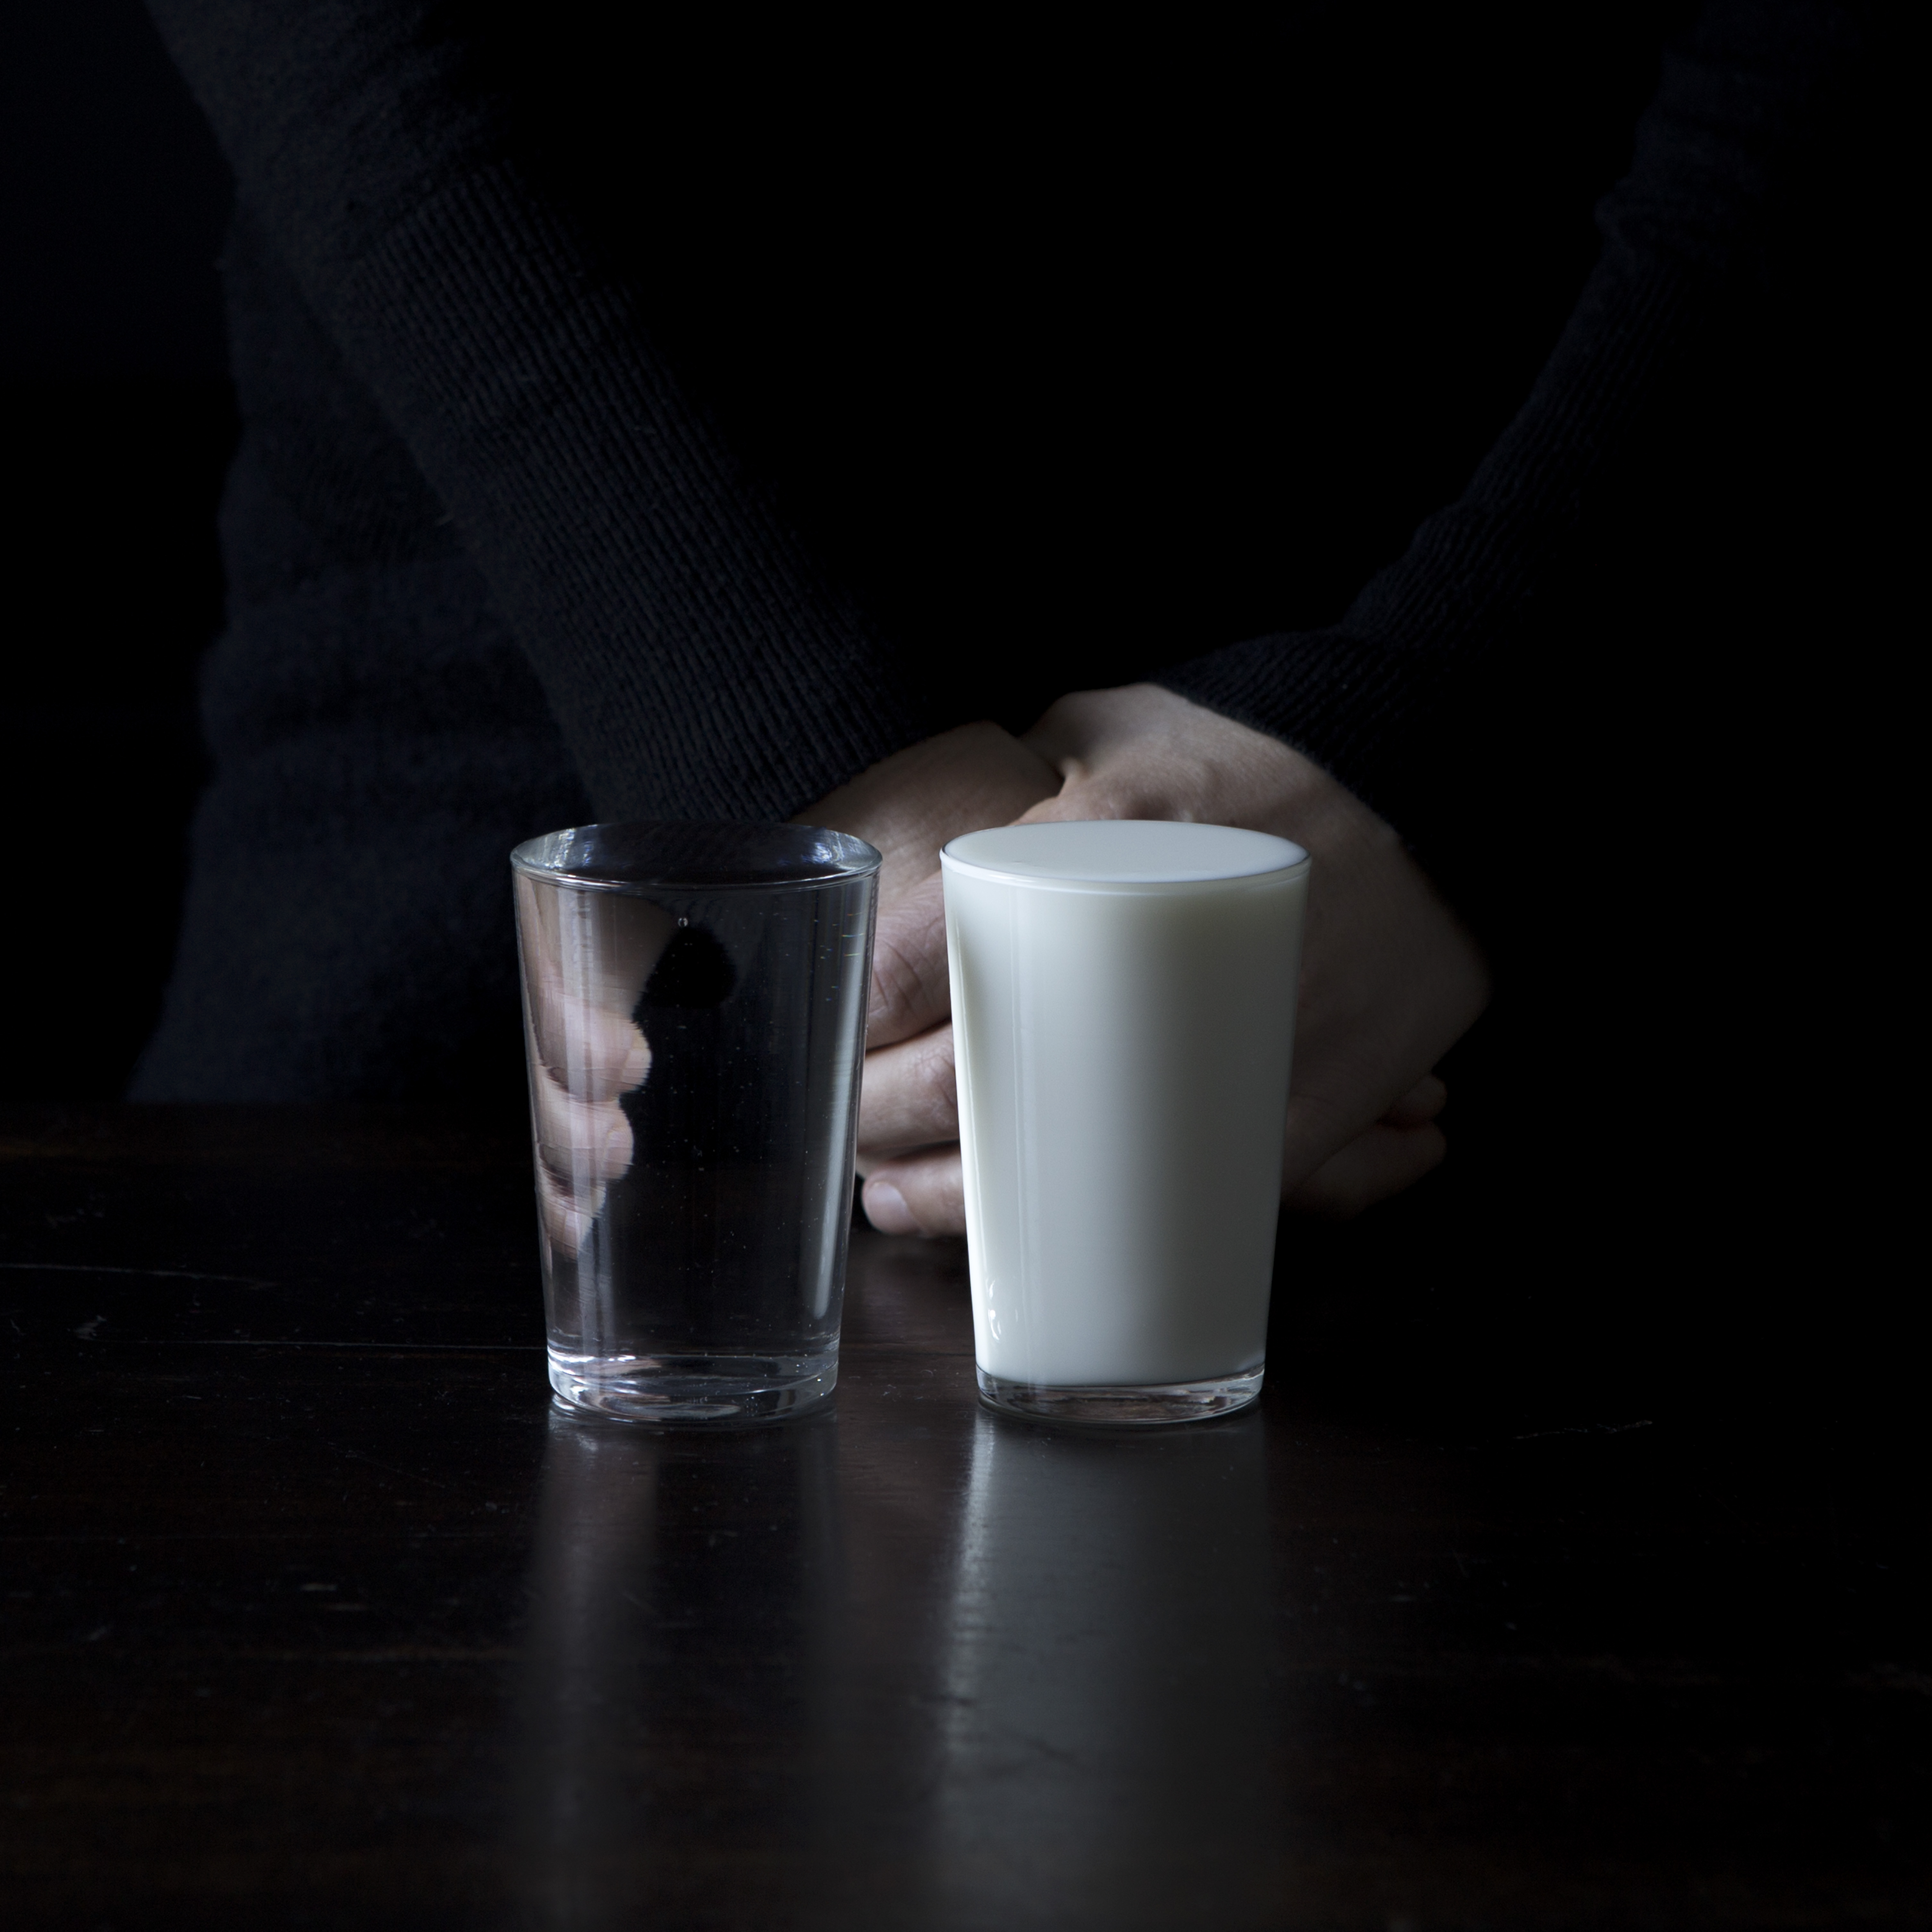 Karin_Schmuck_untitled_milk